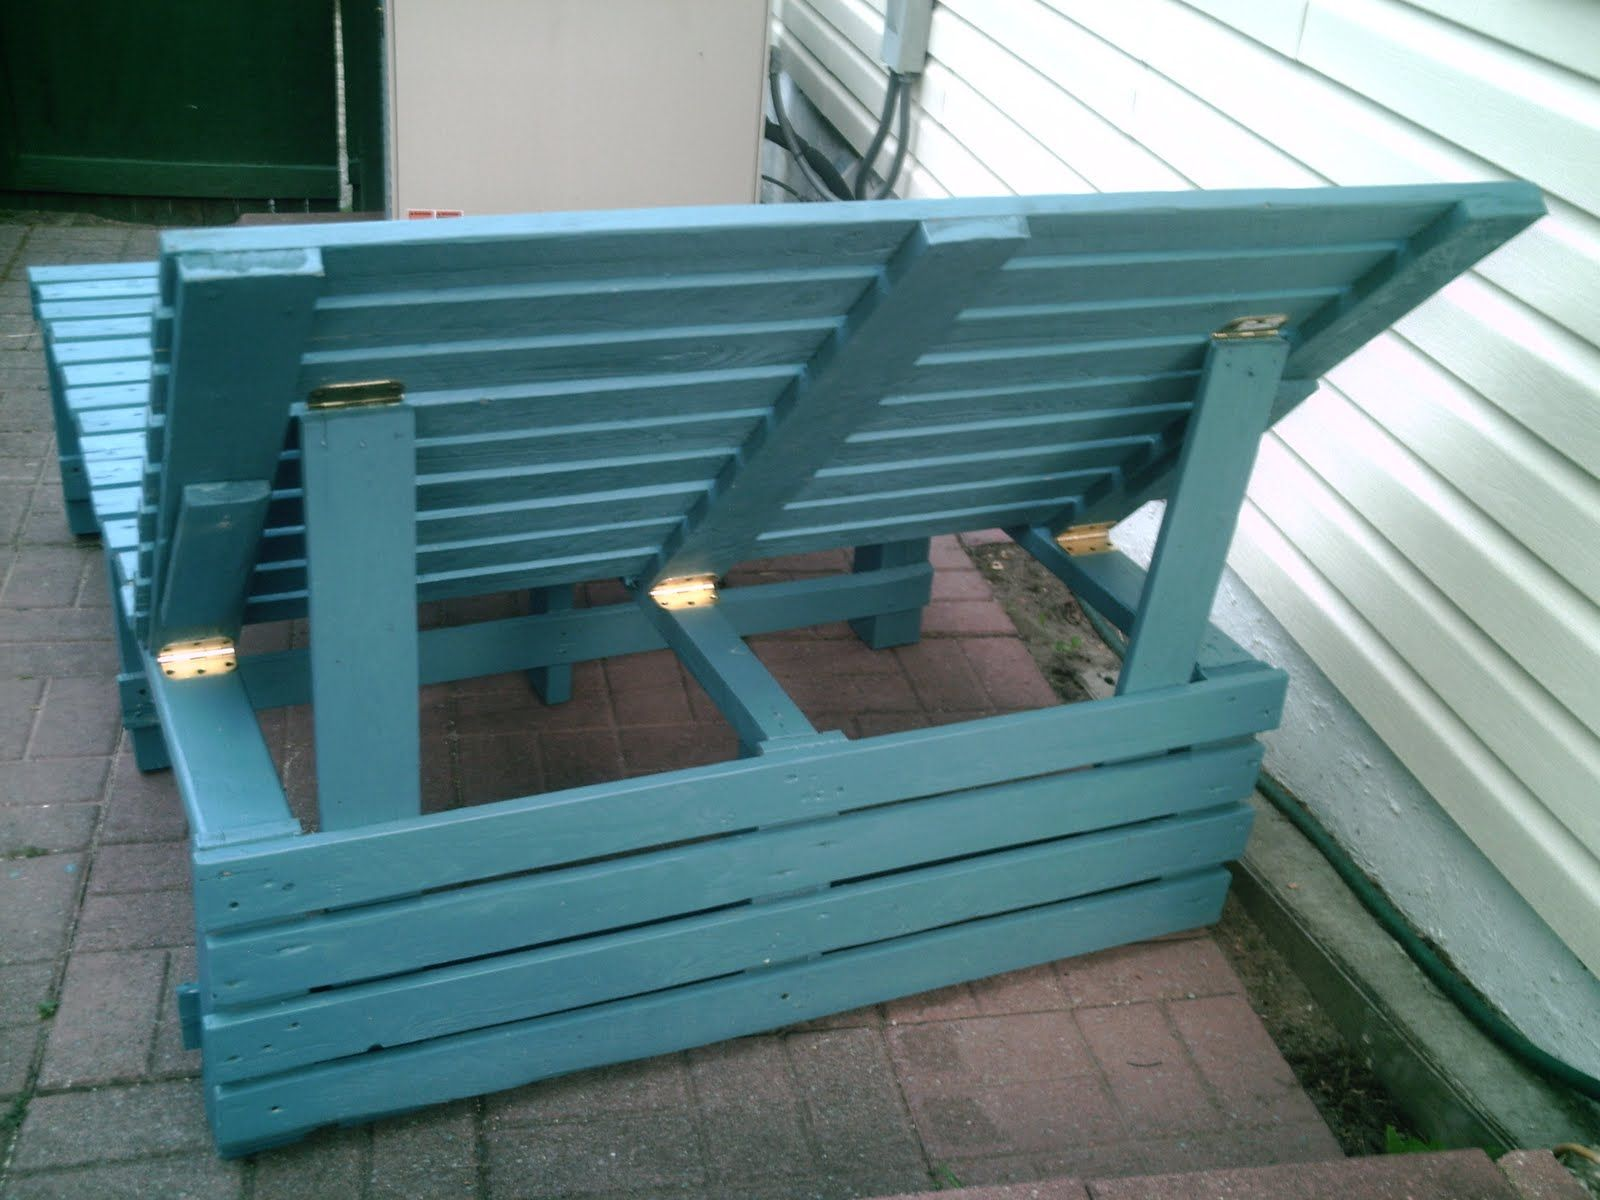 Pallet Lounge Chair Pallet Lounge Chair Homemade garden lounge